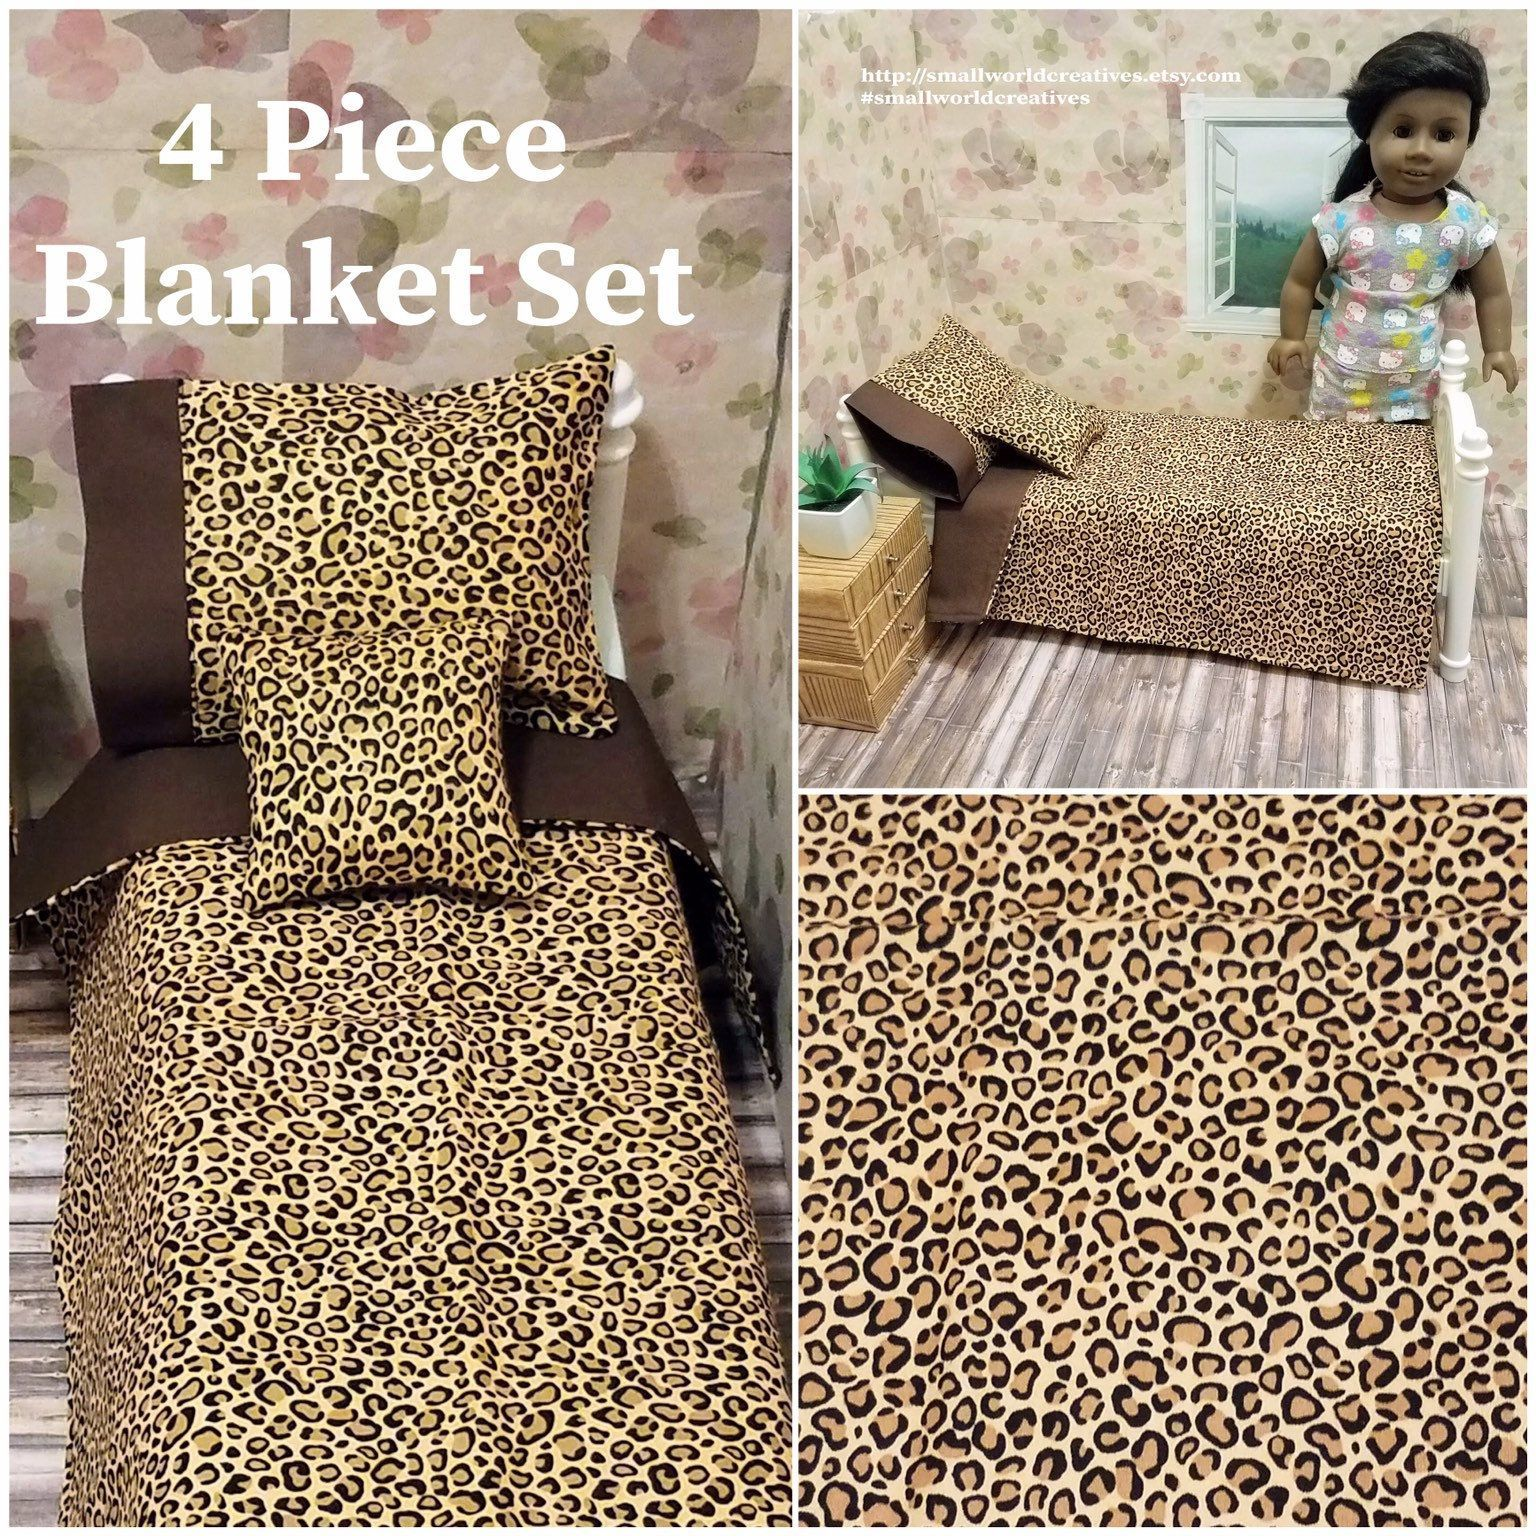 American Girl 5 Piece Reversible Leopard Animal Print Bed Set/18 Inch Doll Bedding #bearbedpillowdolls American Girl 5 Piece Reversible Leopard Animal Print Bed Set/18 Inch Doll Bedding by SmallWorldCreatives on Etsy #bearbedpillowdolls